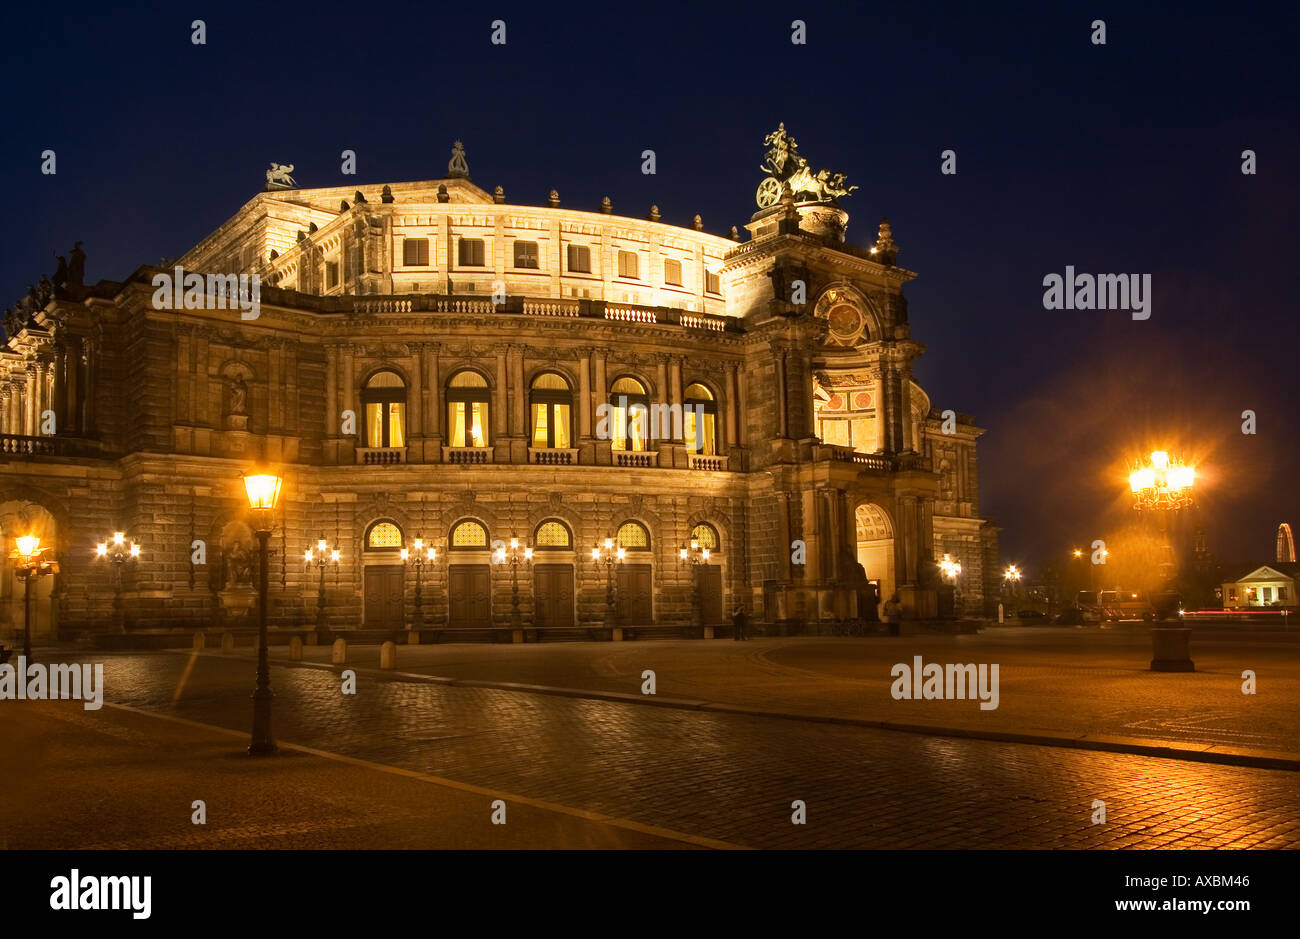 Dresden theatre square semper opera house at twilight strech limousine citytour by night - Stock Image